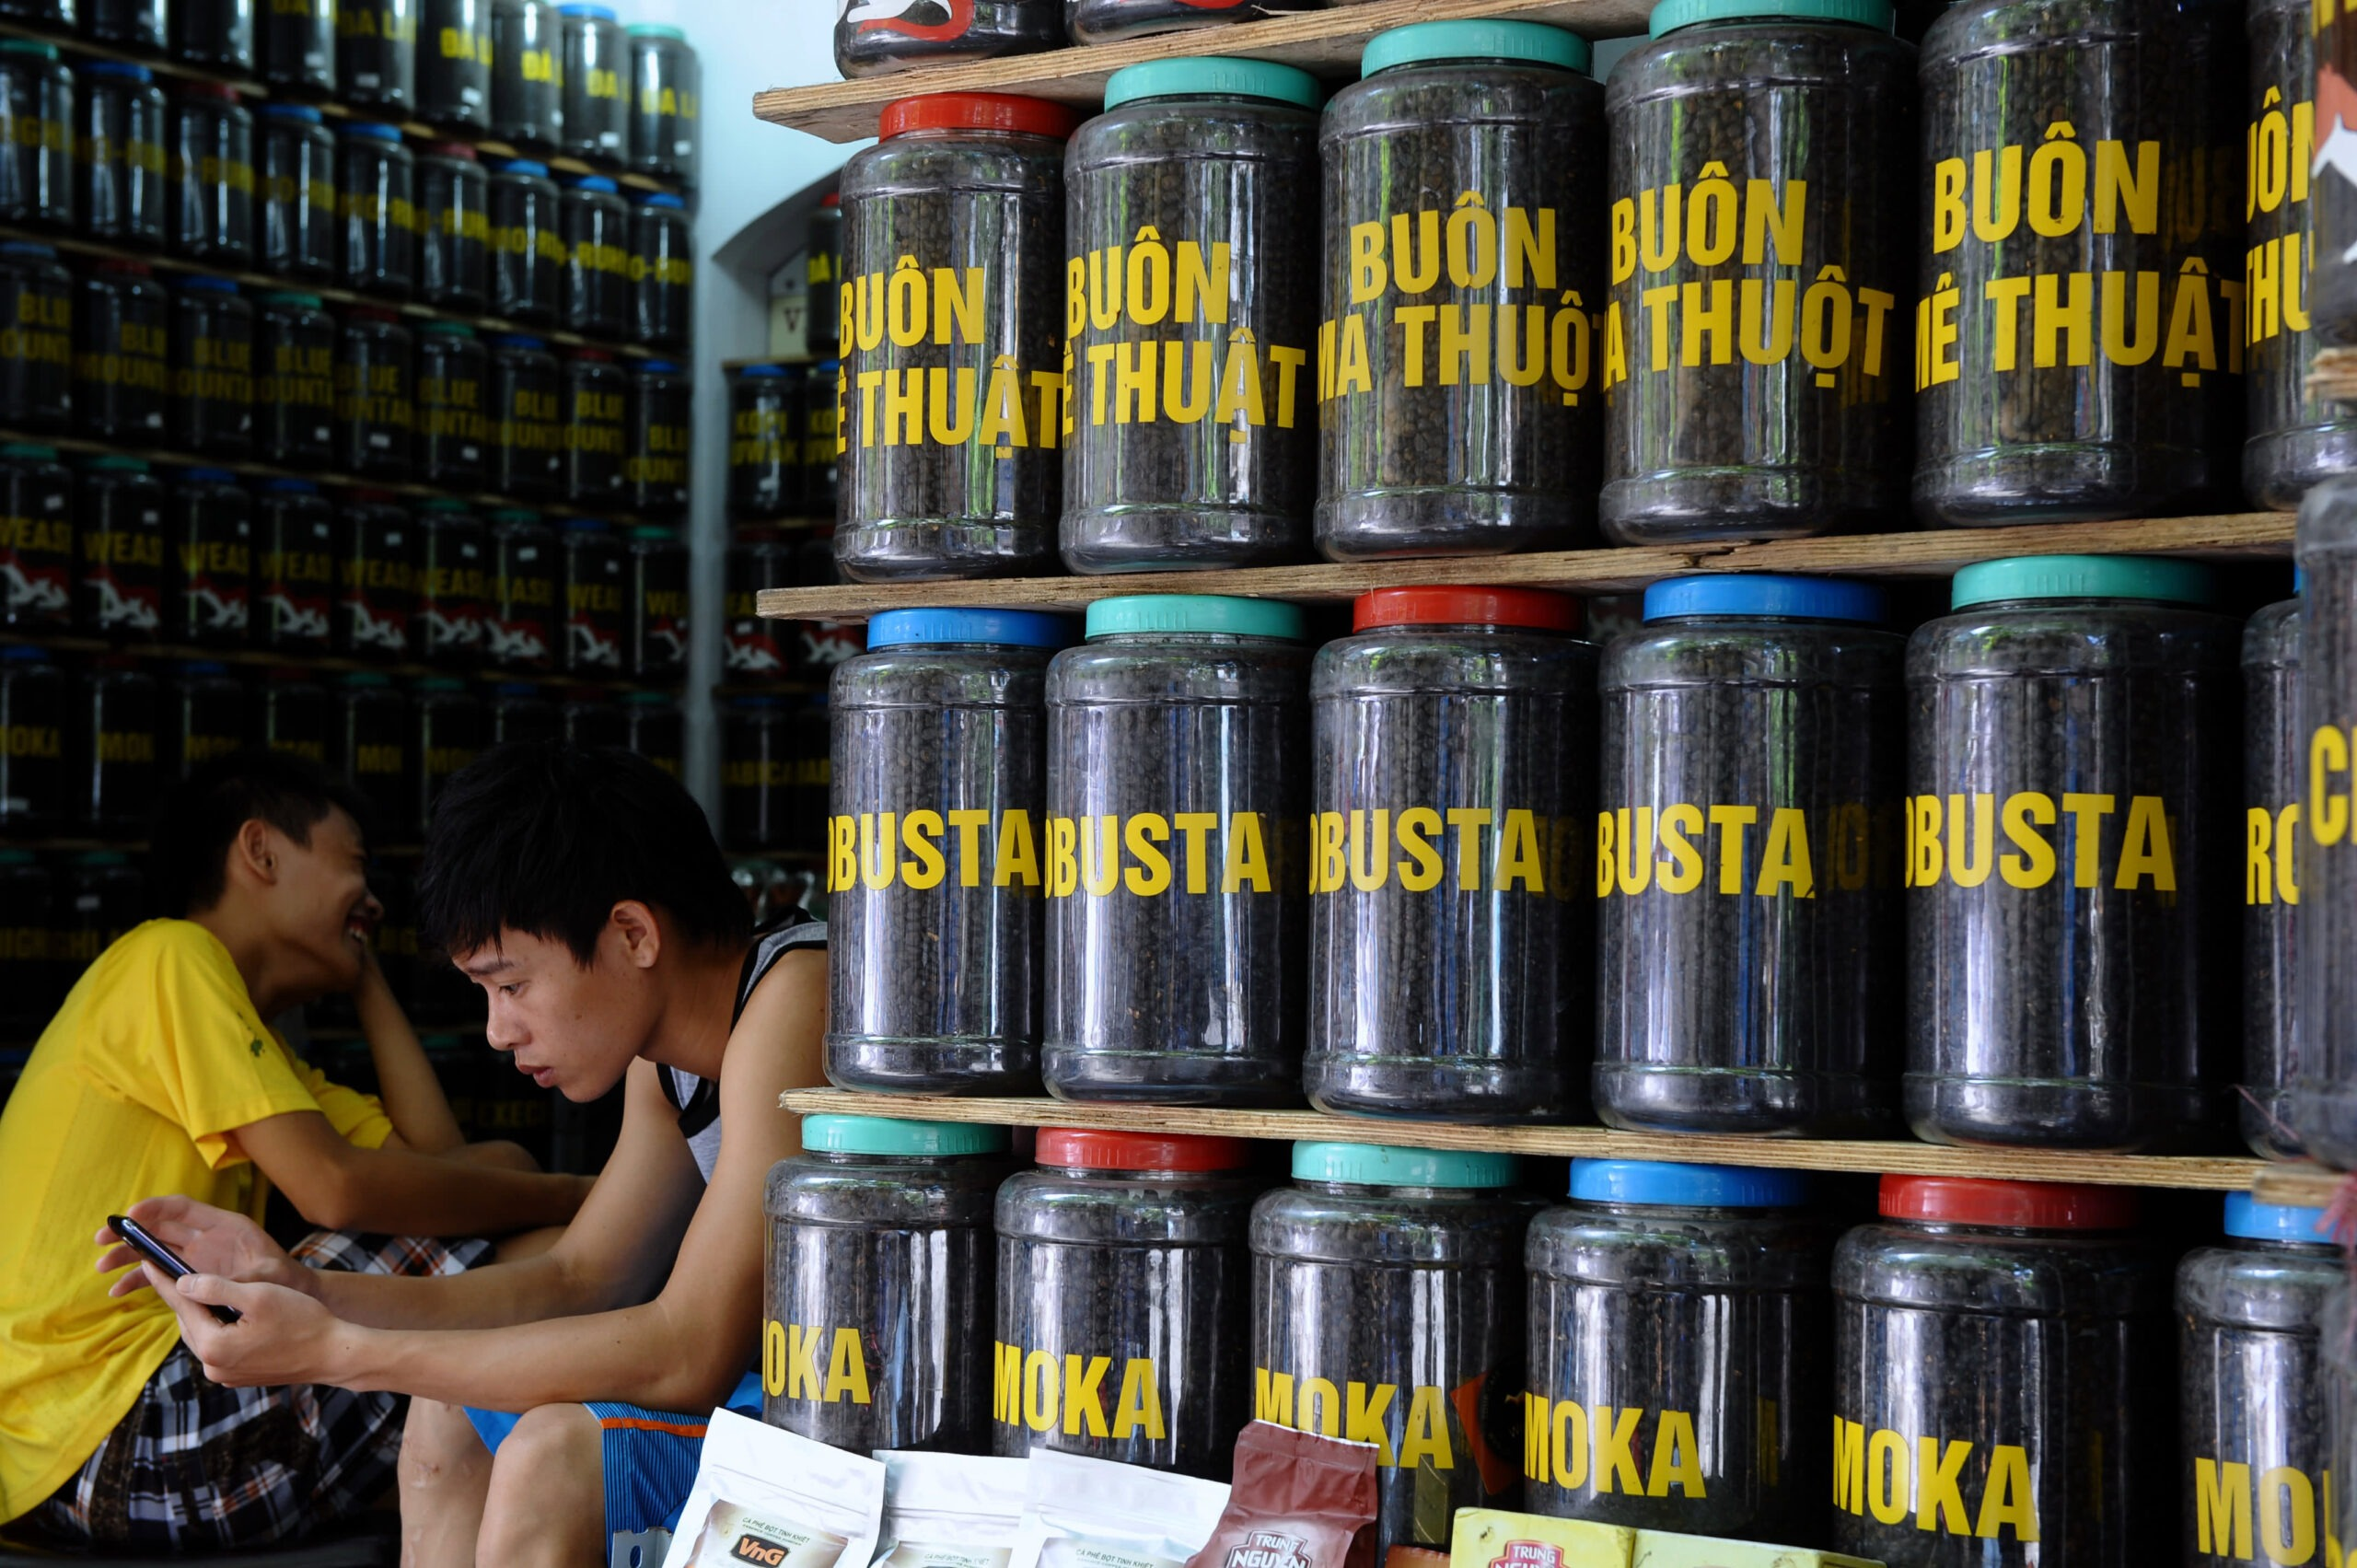 Covid lockdown in Vietnam could keep coffee prices high through 2022